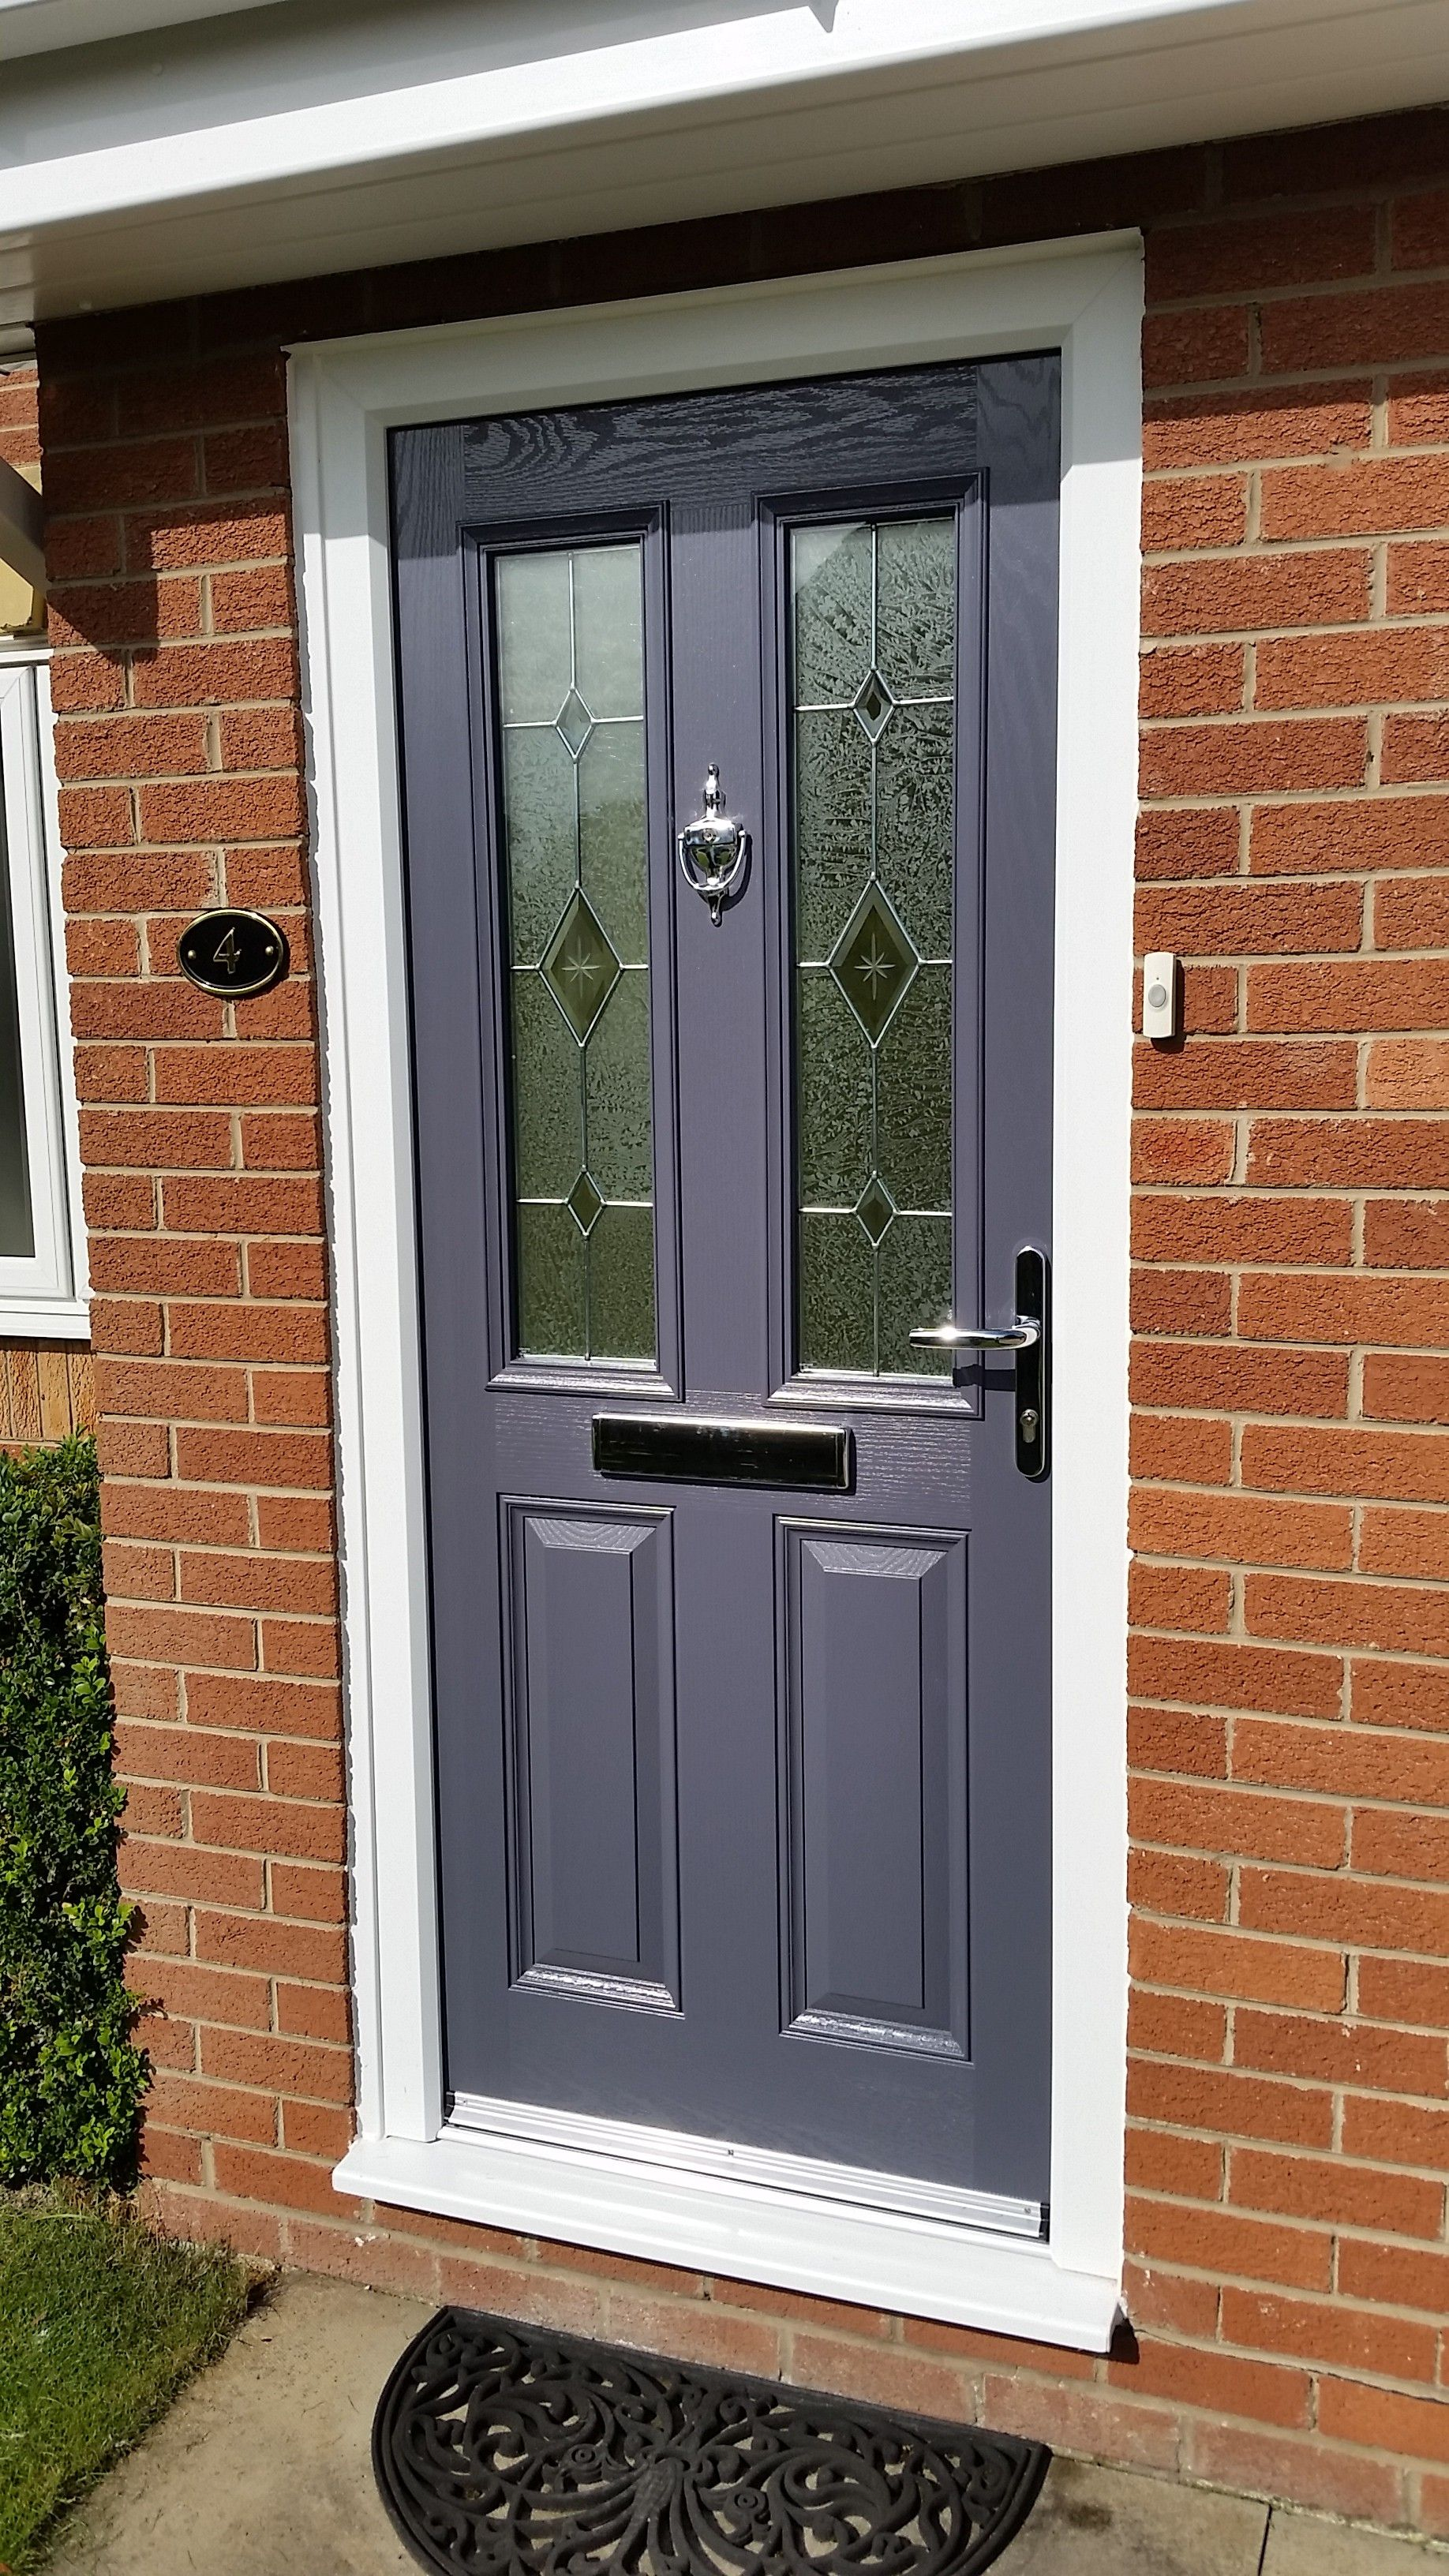 composite door #XtremeDoor York style door in slate grey and kara zinc glass. & composite door #XtremeDoor York style door in slate grey and kara ... Pezcame.Com